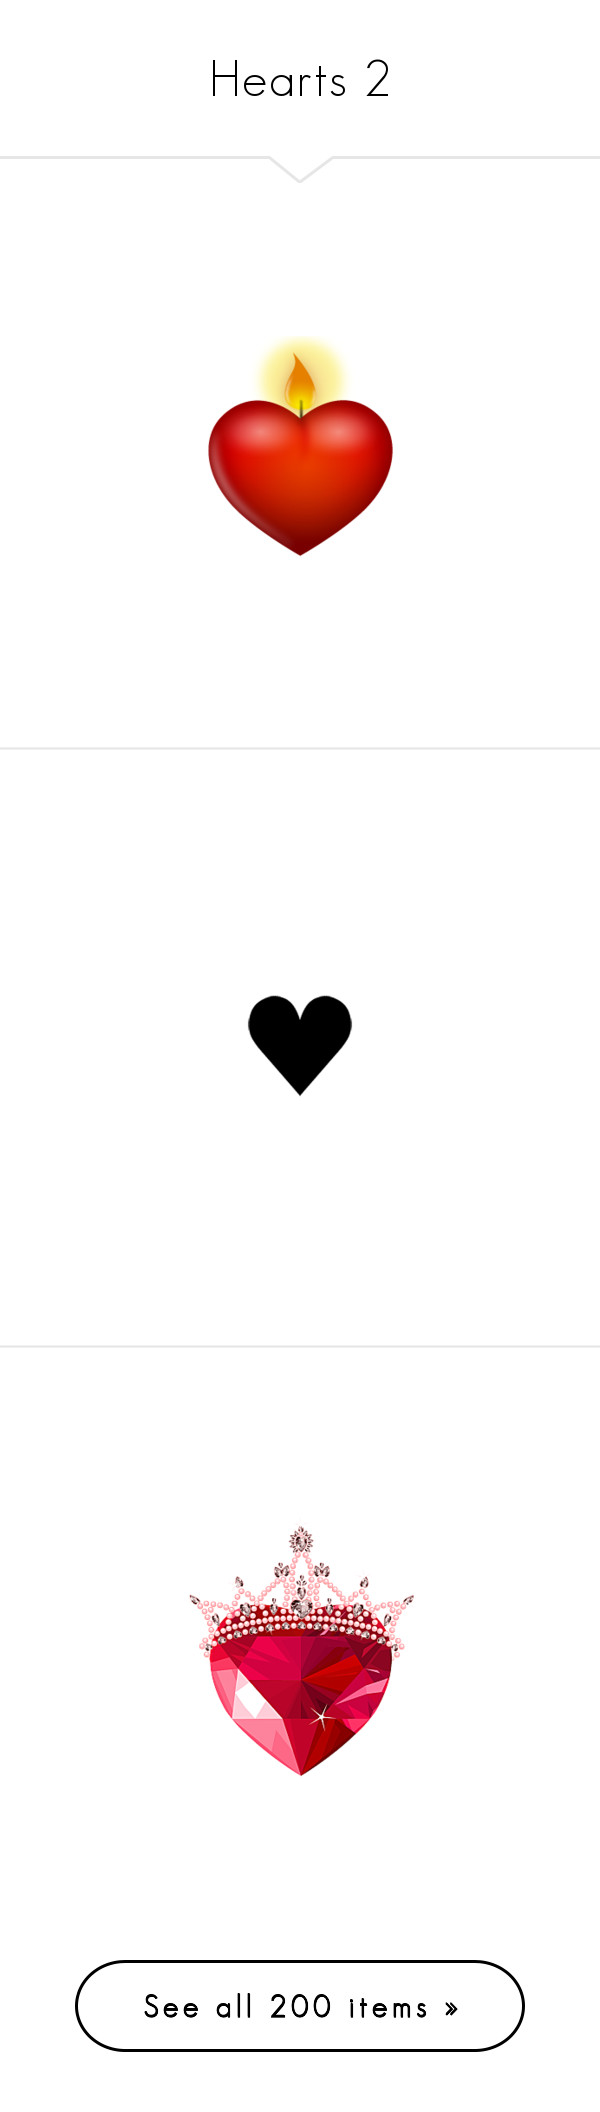 """""""Hearts 2"""" by swan-lady ❤ liked on Polyvore featuring home, home decor, hearts, backgrounds, decoration, effects, props, filler, black and other"""